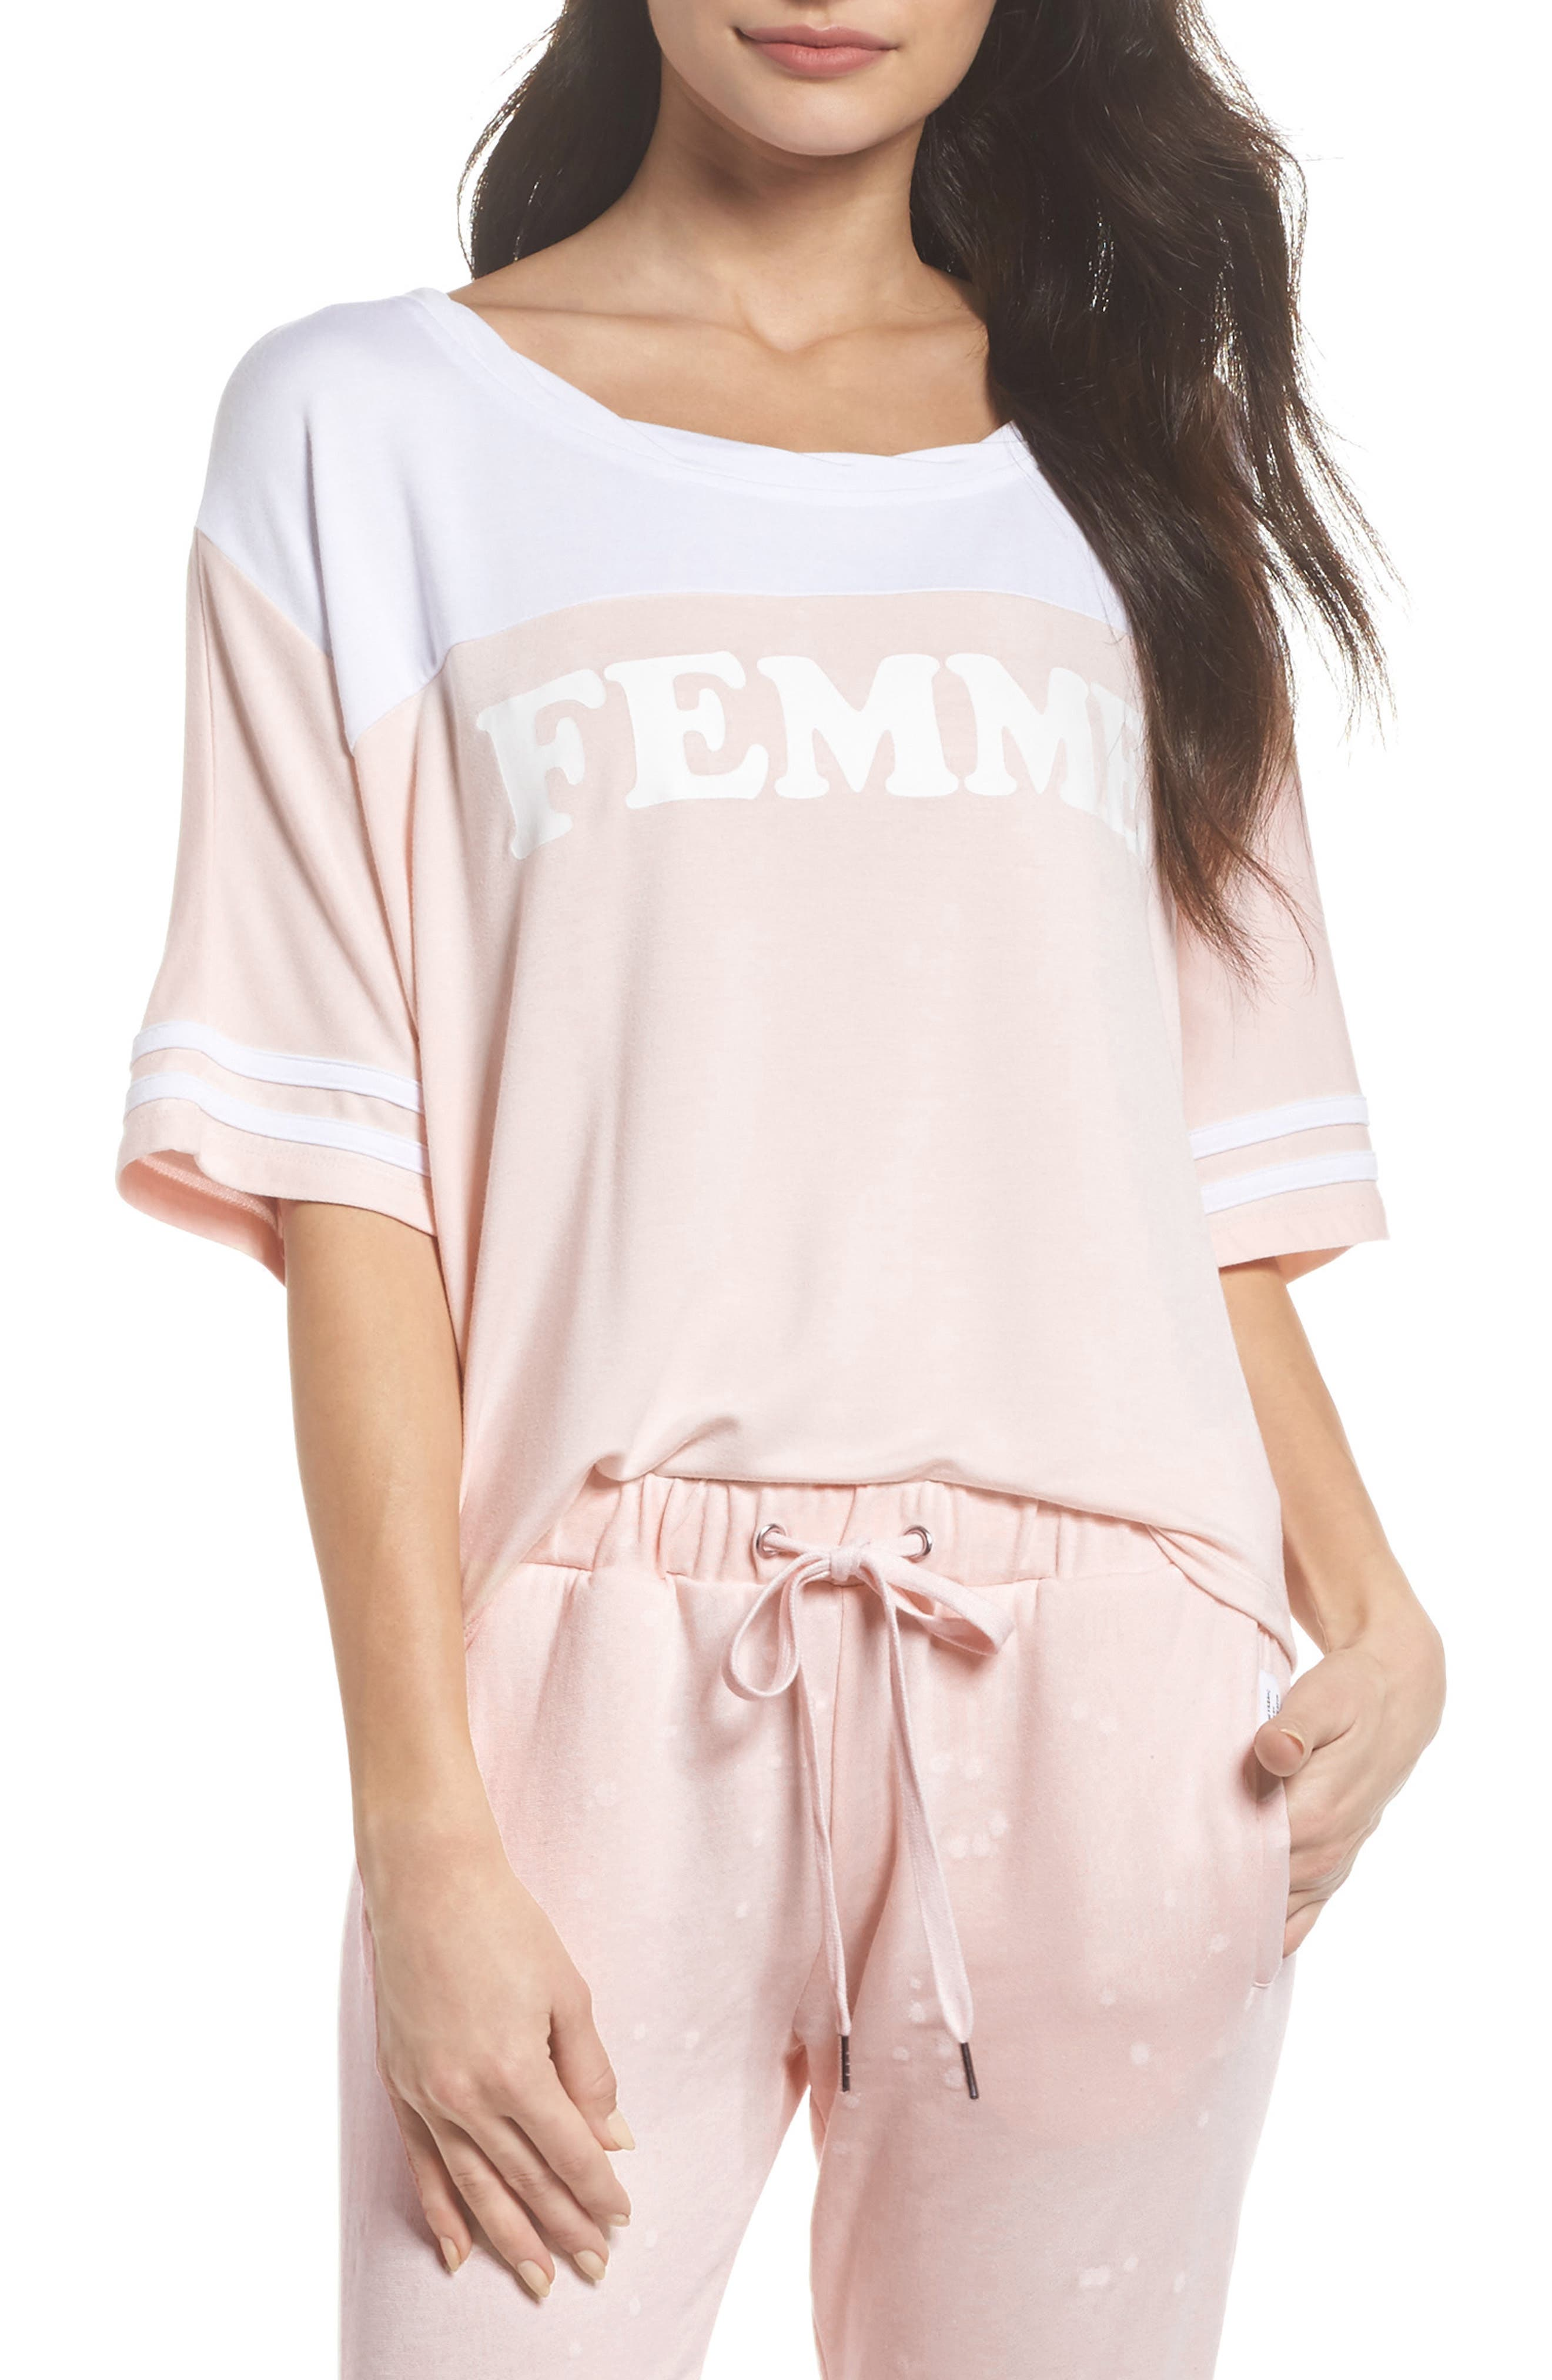 Team Femme Baggy Tee,                         Main,                         color, Shell/ White